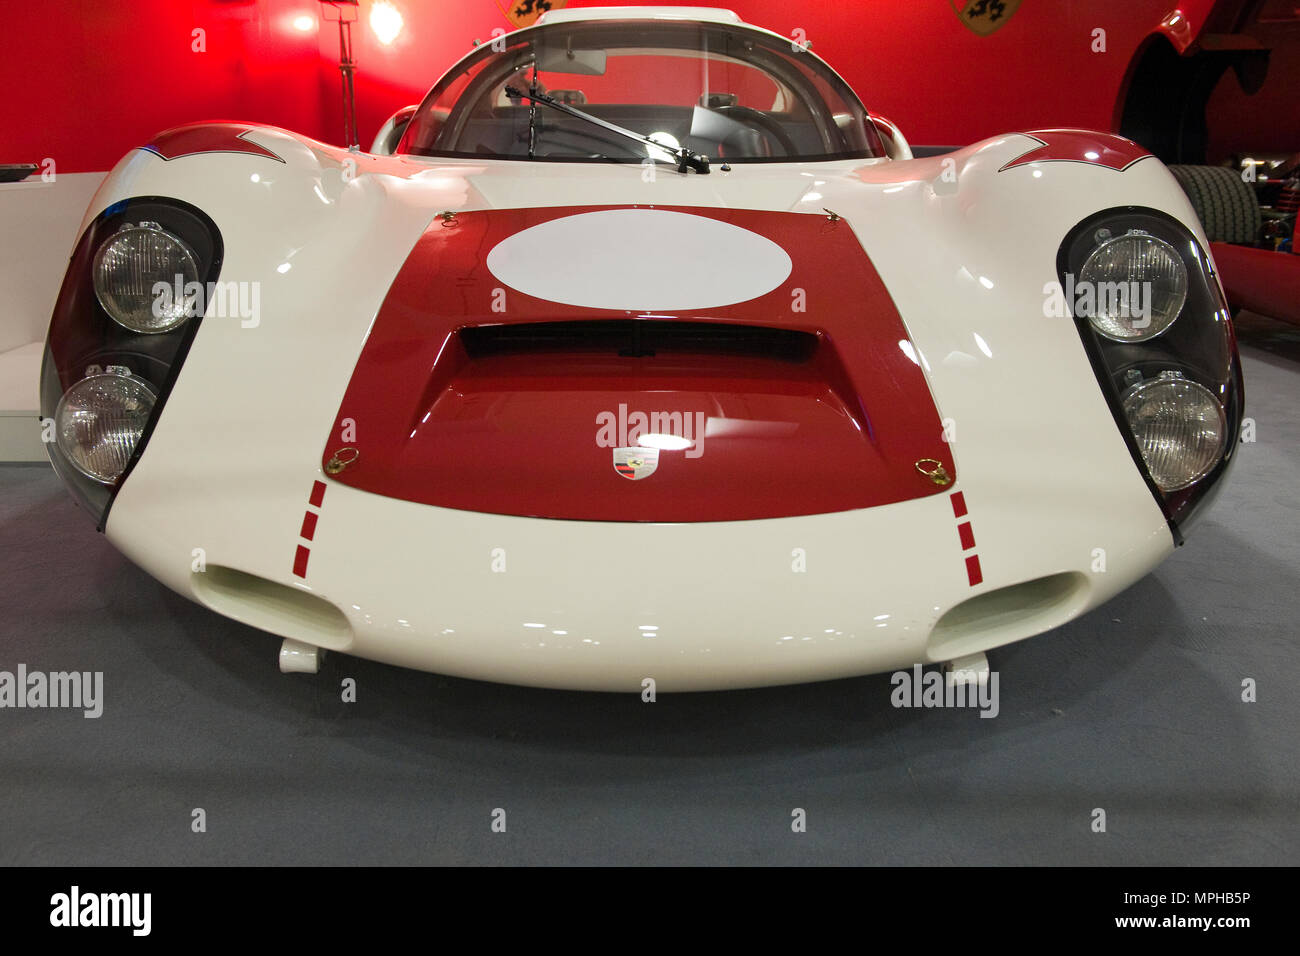 Evex E-car on base Porsche 910, electric motor, electric engine, 490 ...